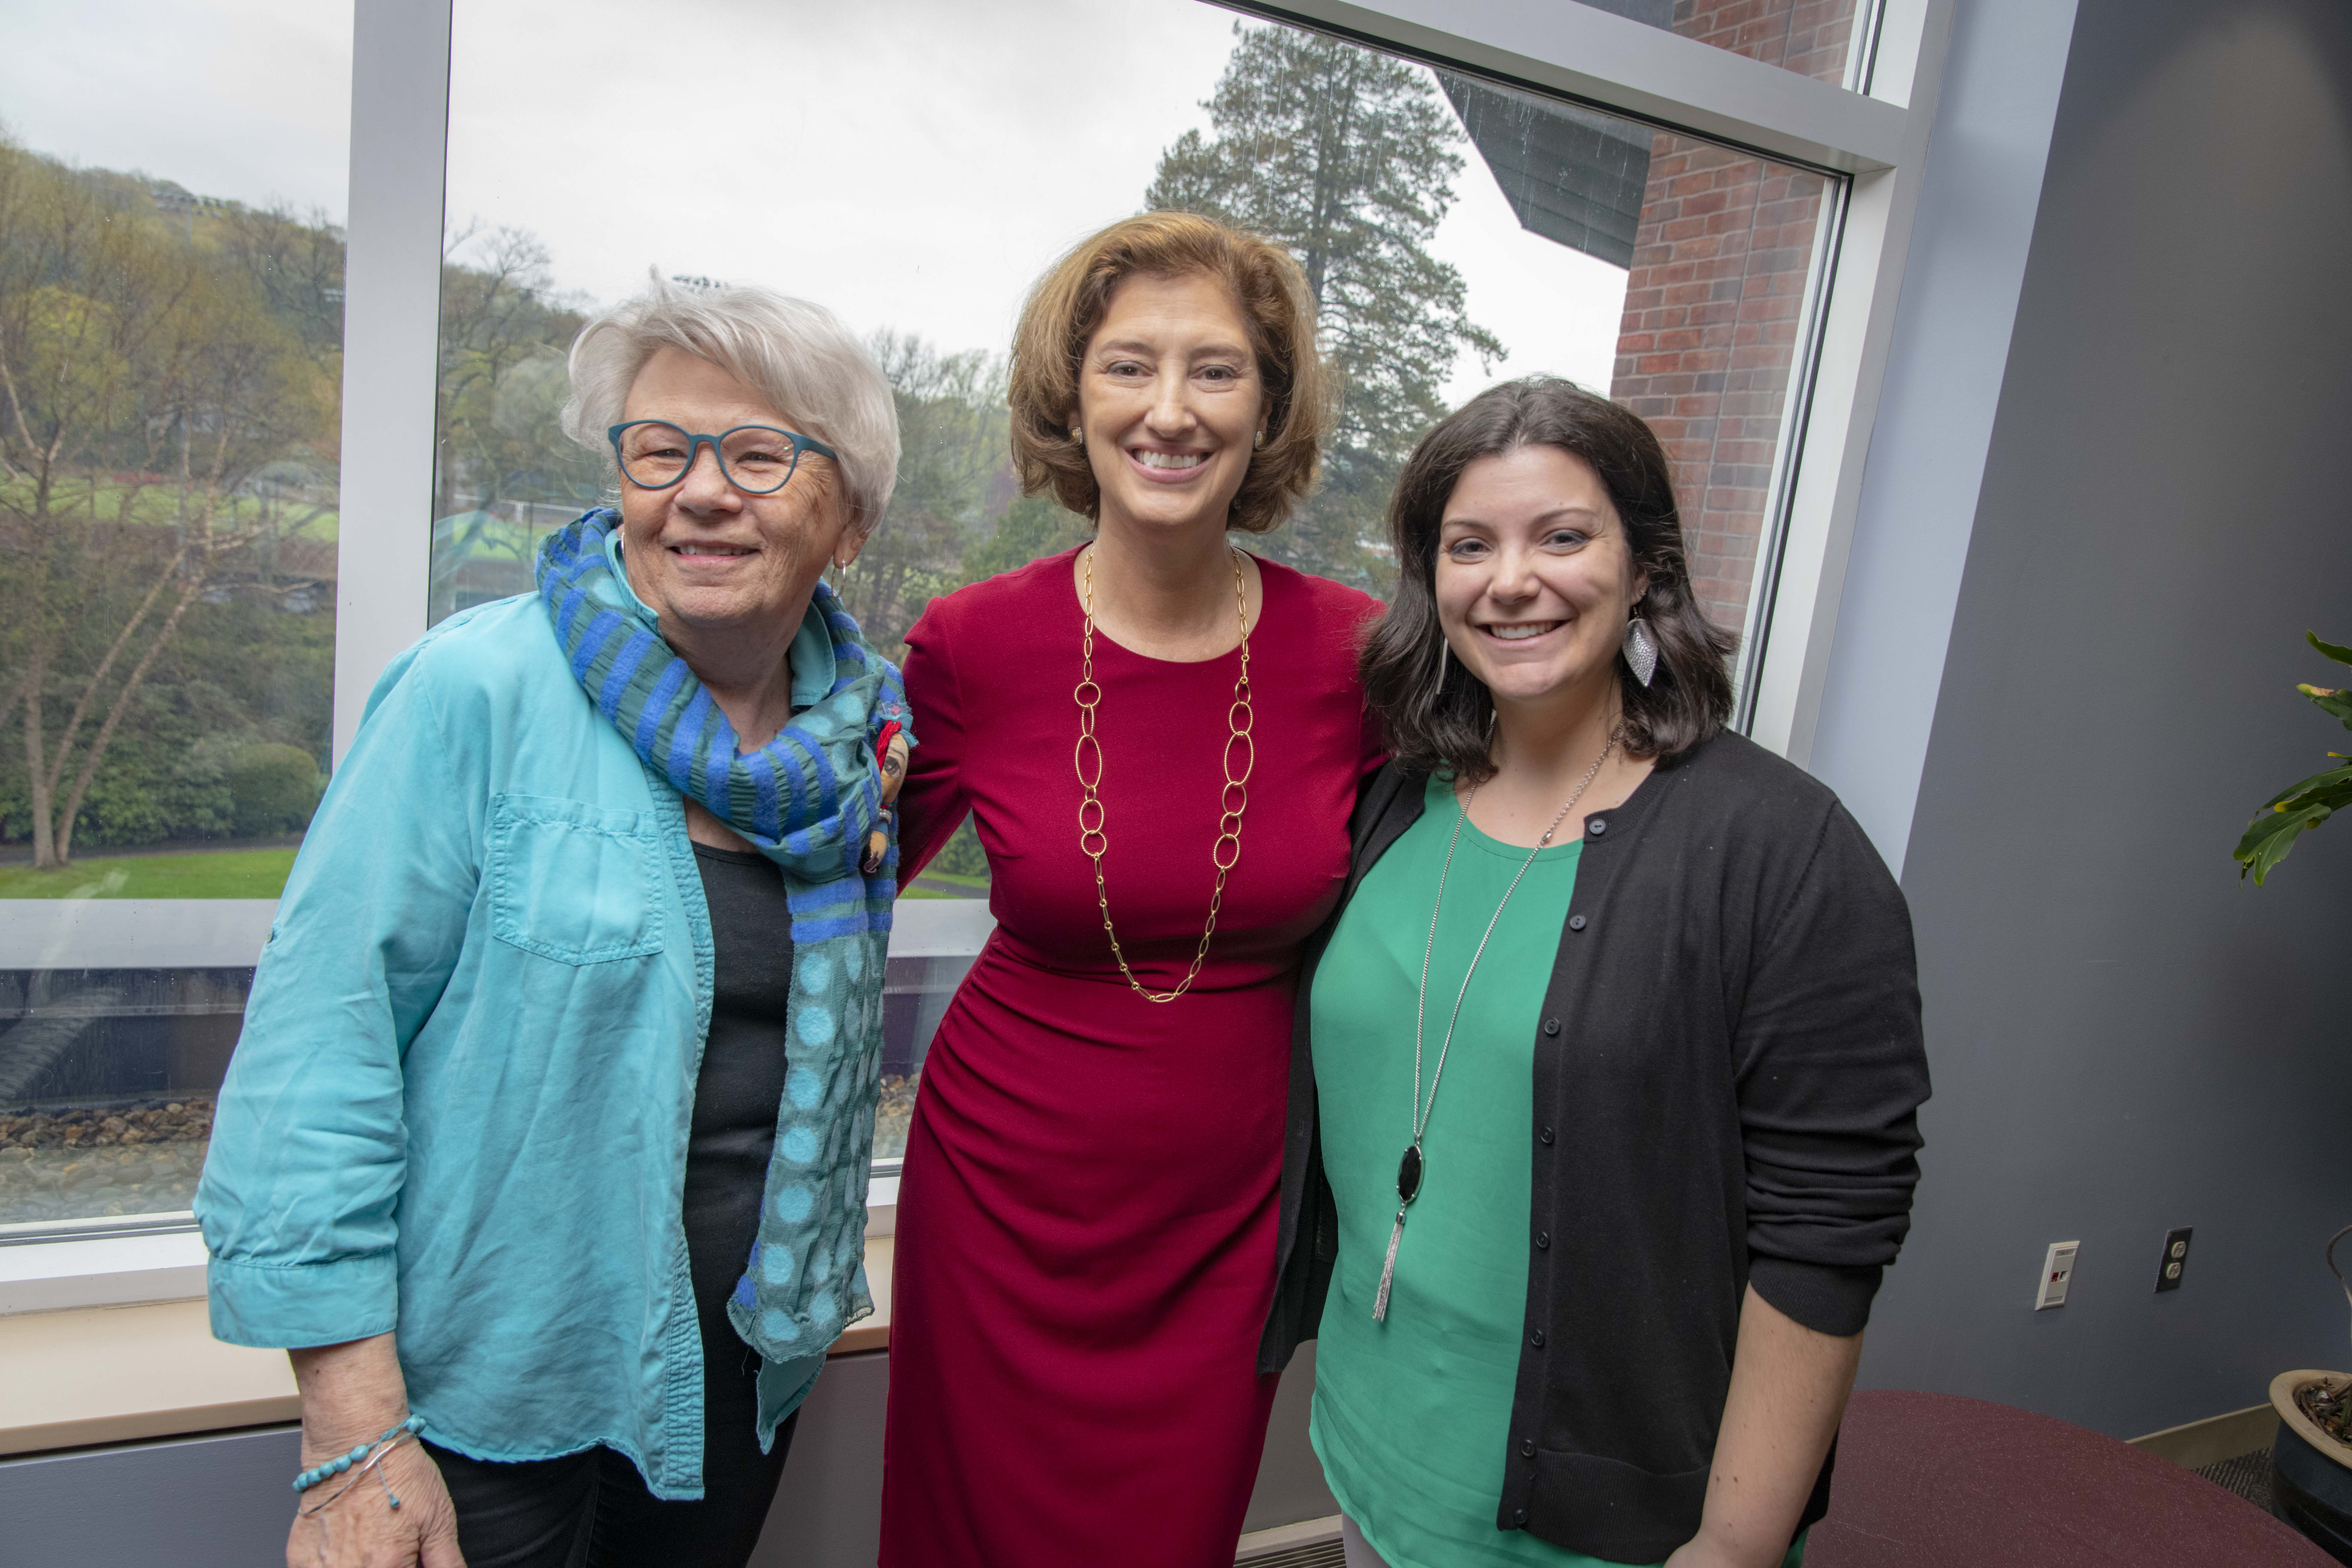 Peggy Isaacson, Laurie Leshin, and Laura Rosen smile together following the Town Hall meeting.